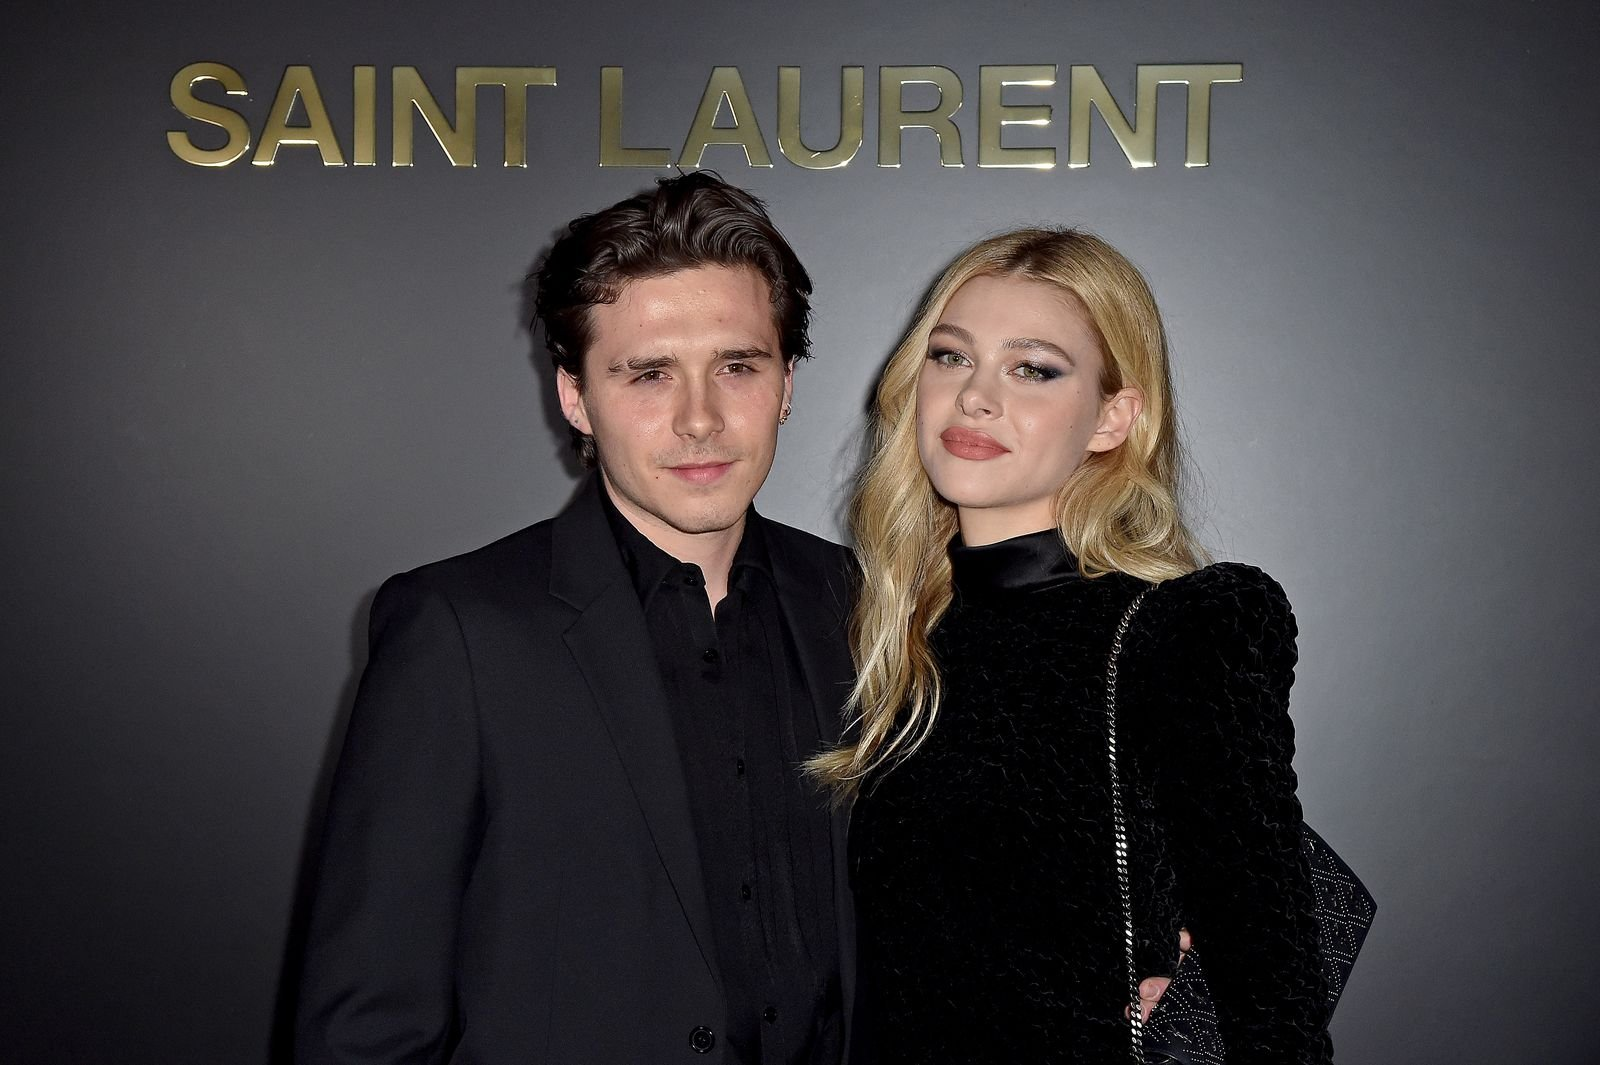 Brooklyn Beckham and Nicola Peltz at a Saint Laurent show for Paris Fashion Week's Womenswear Fall/Winter 2020/2021 on February 25, 2020, in France | Photo: Dominique Charriau/WireImage/Getty Images